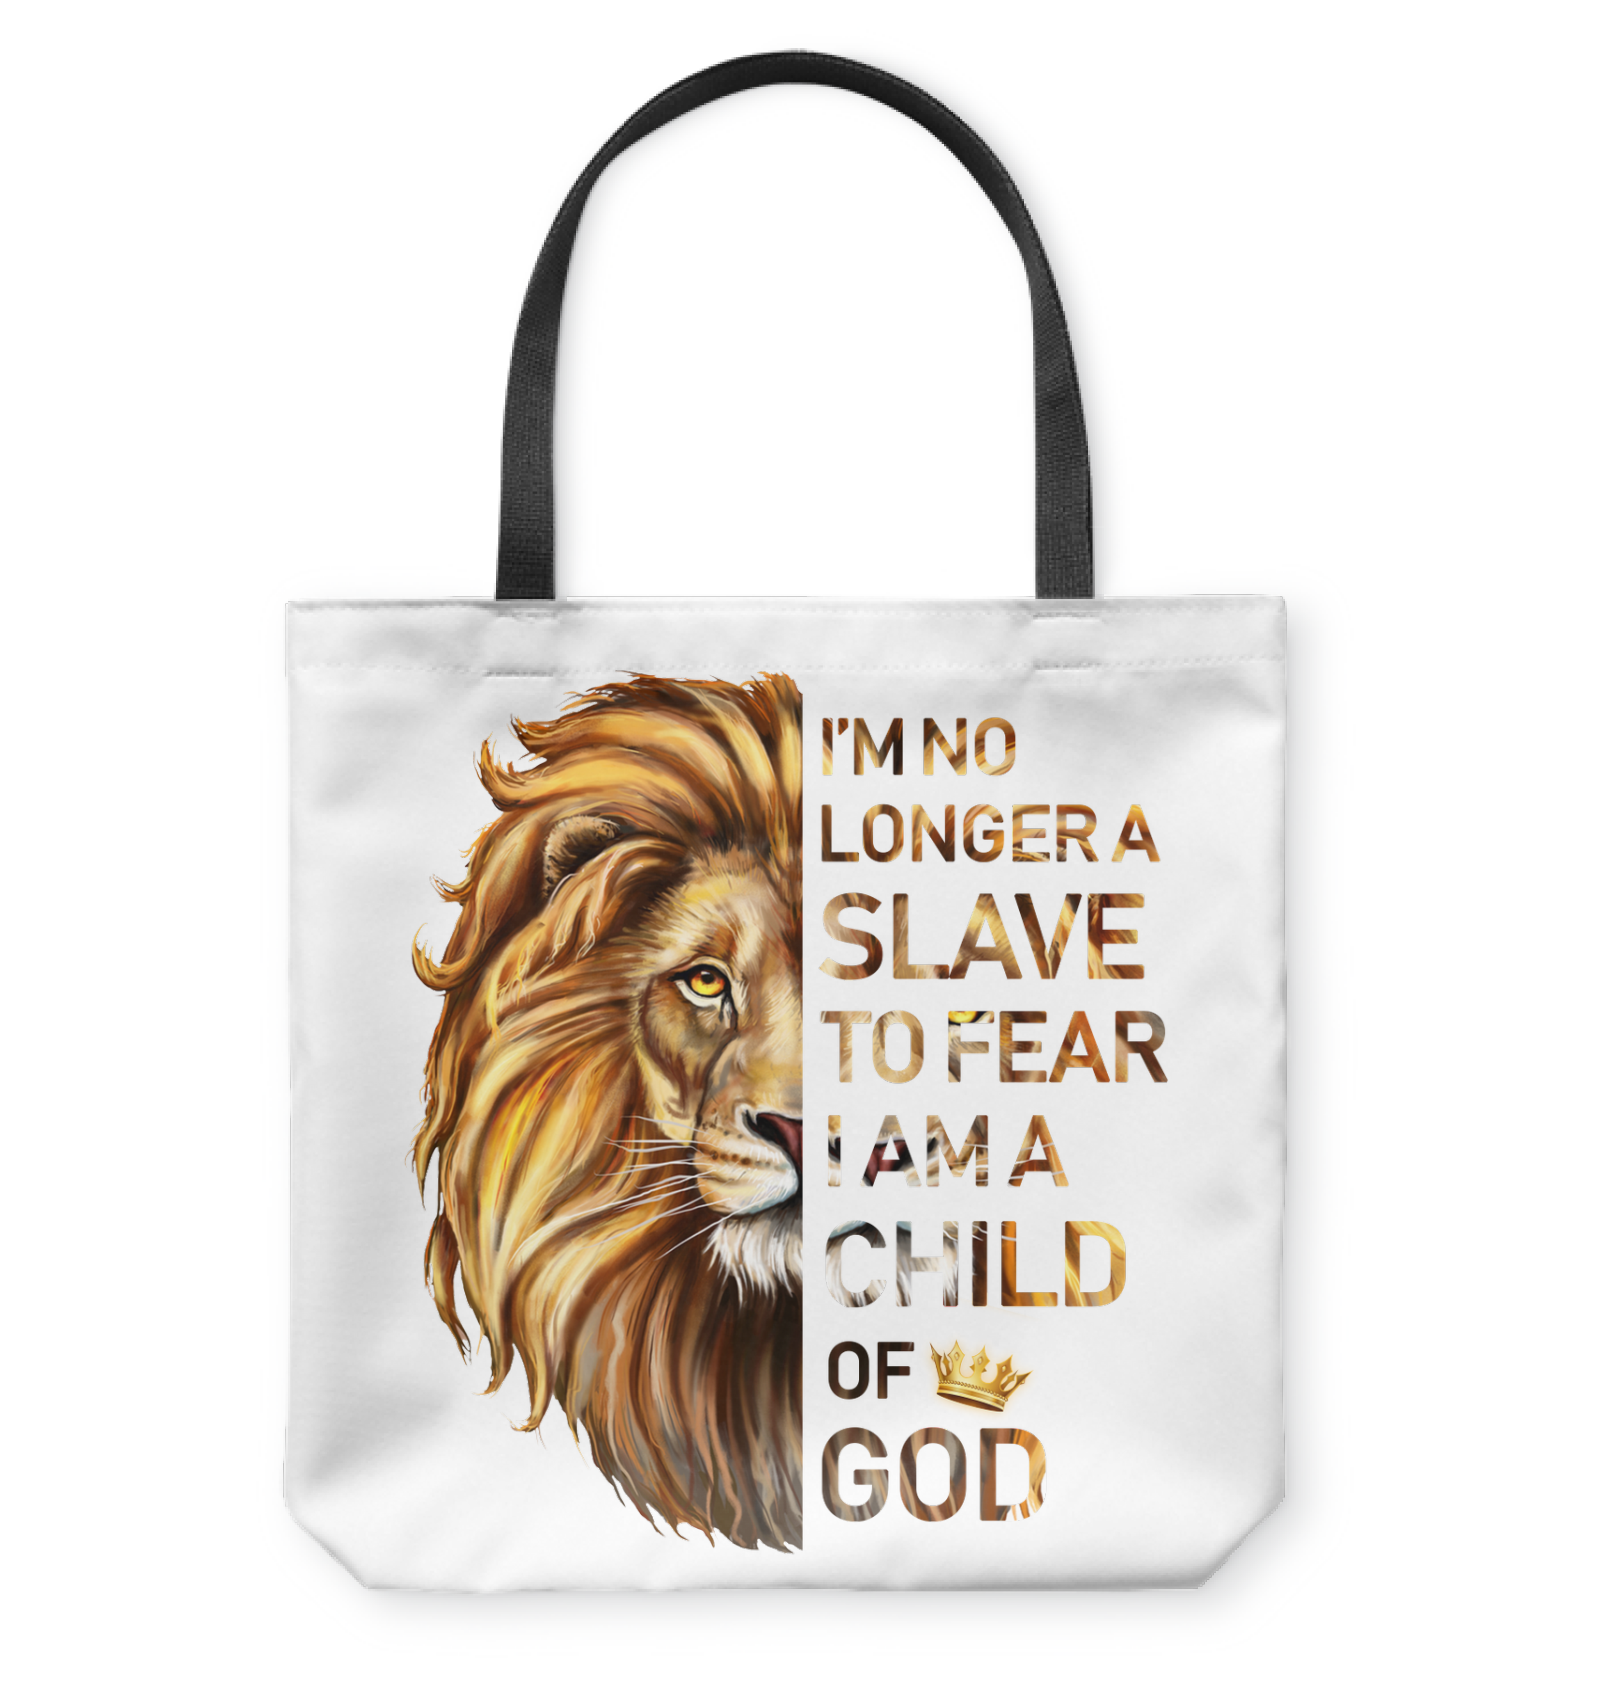 VIRA AWESOME TOTE BAG FOR GOD LOVERS